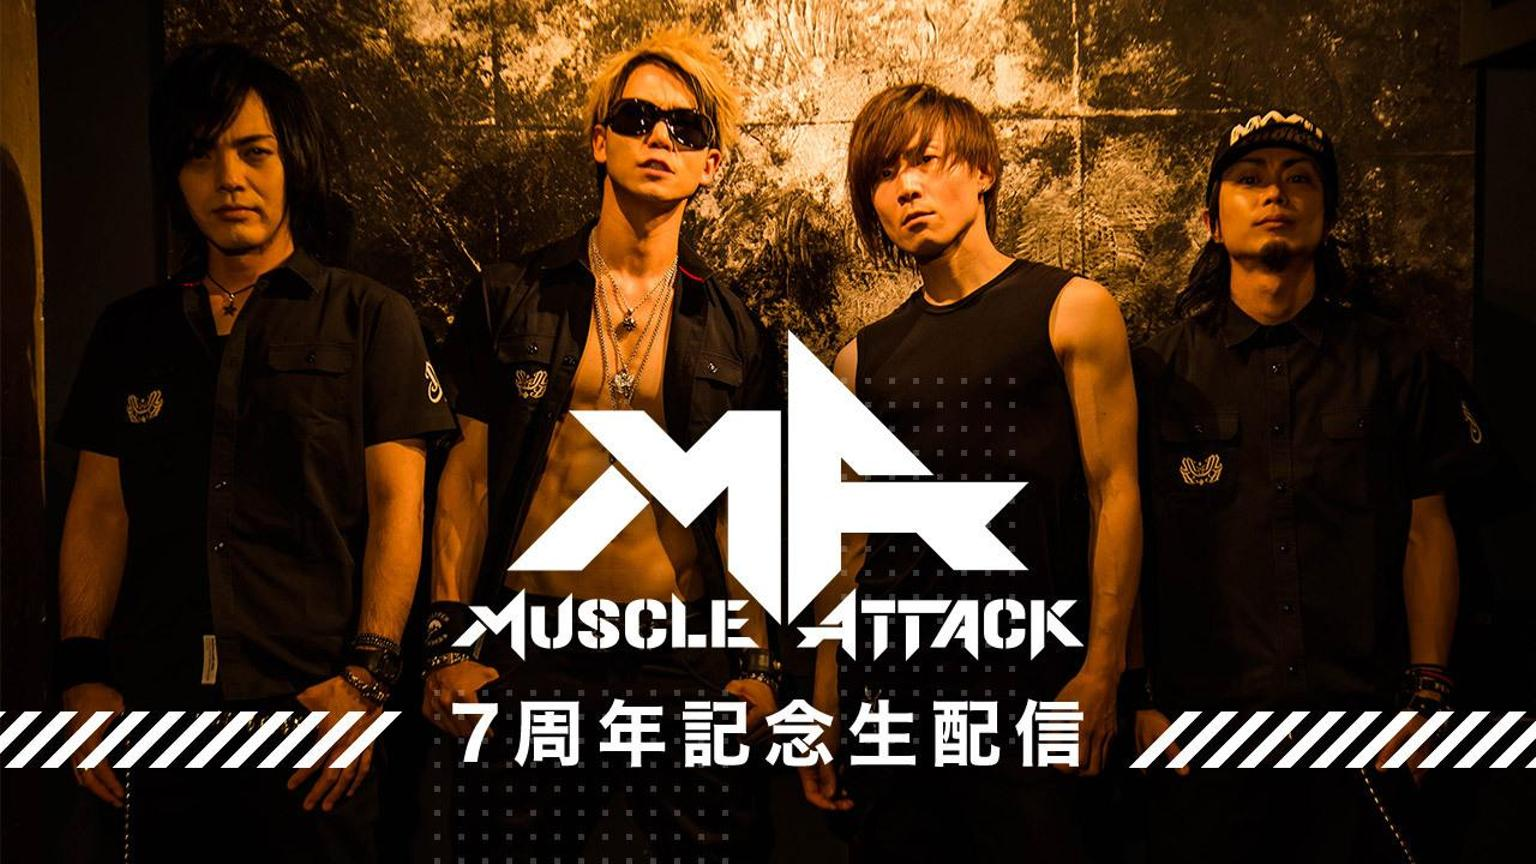 MUSCLE ATTACK 7周年記念 生配信